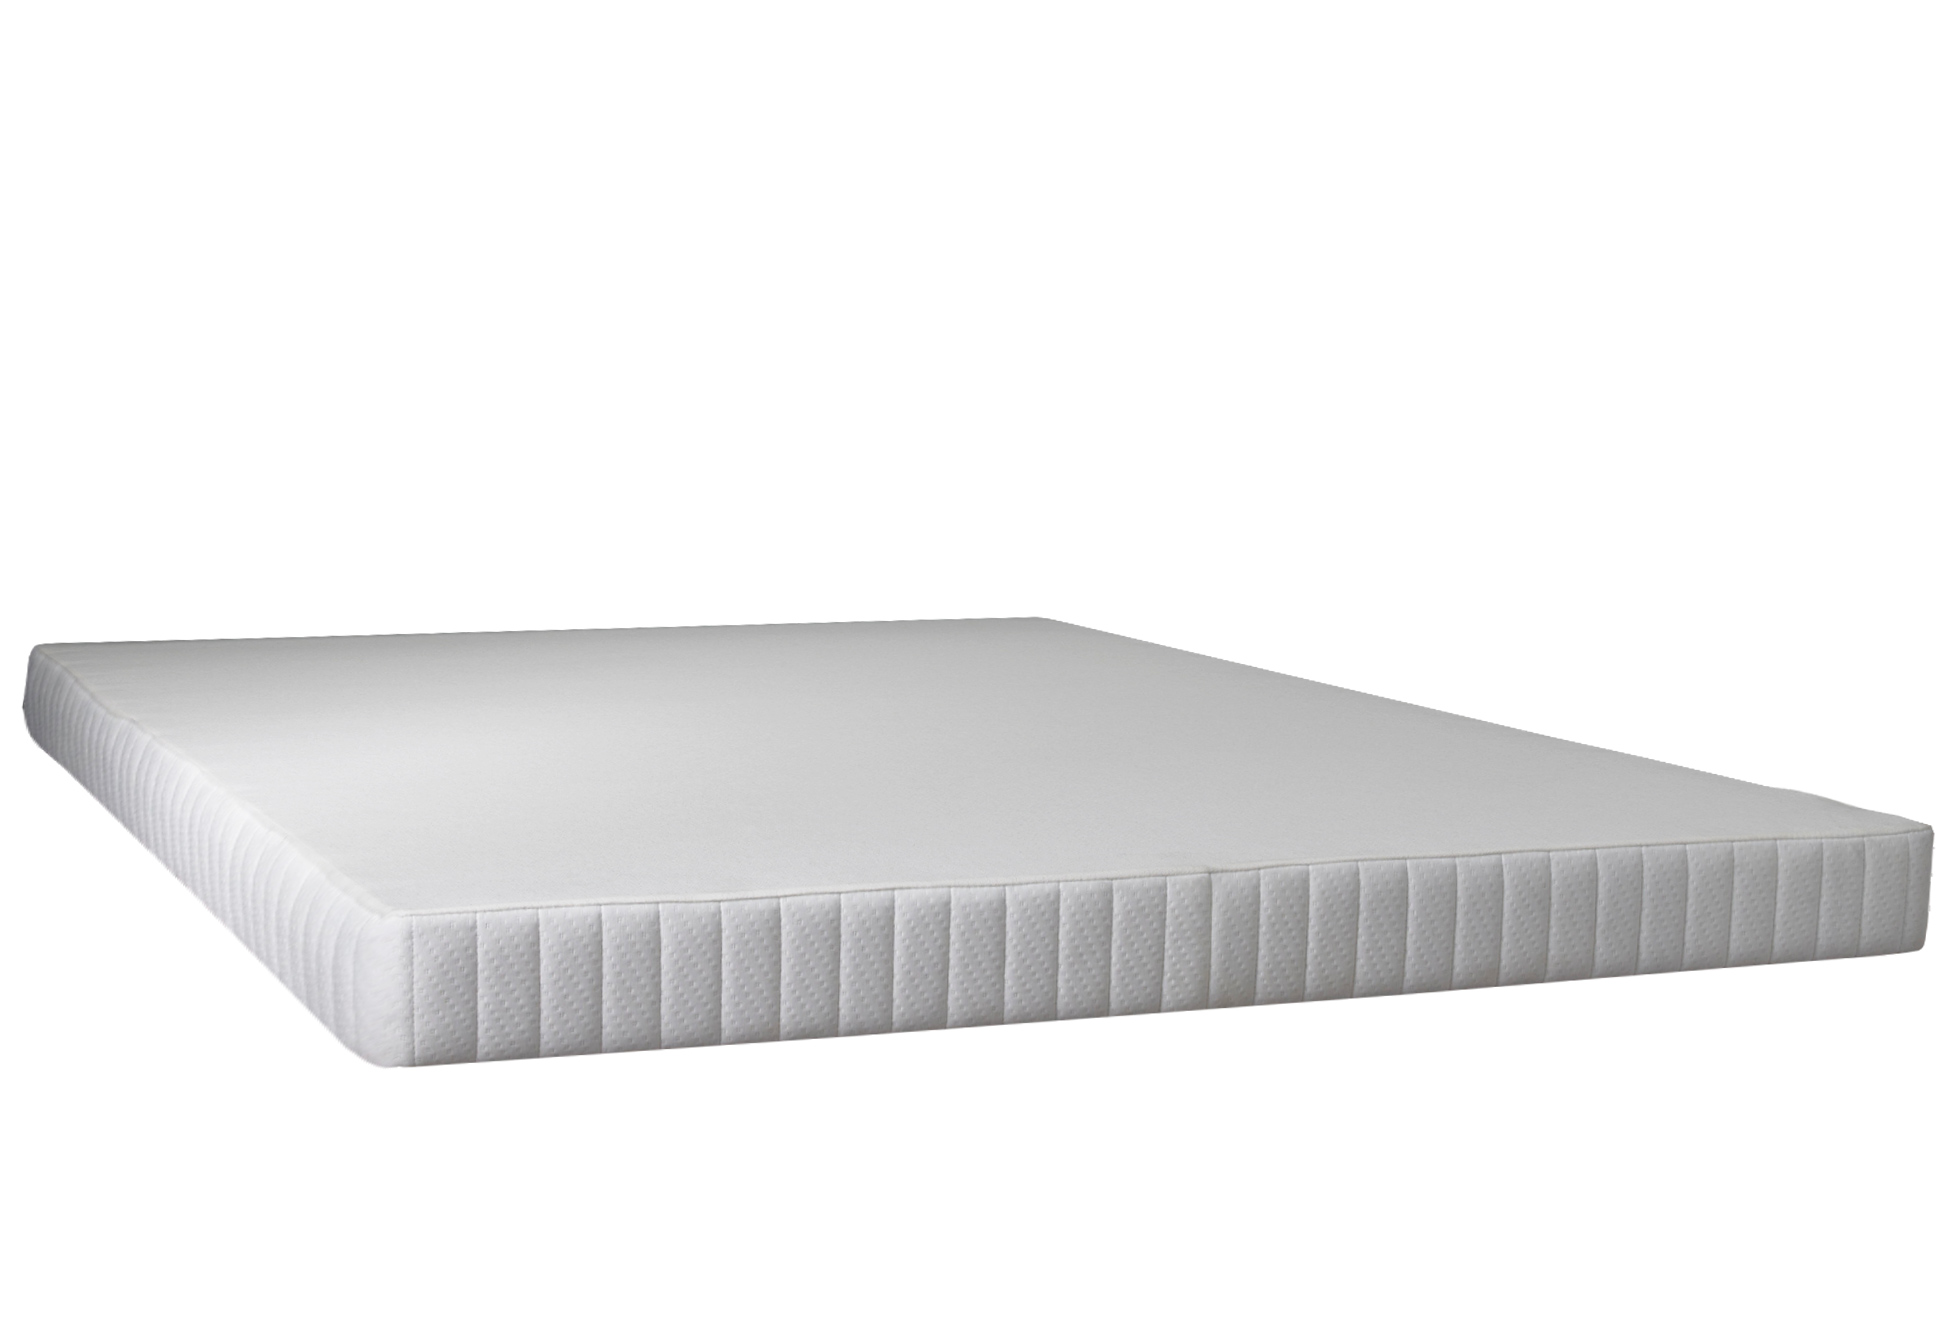 Sommiers Simmons Lattes Universel H15 160x200 Queen Size Sommiers